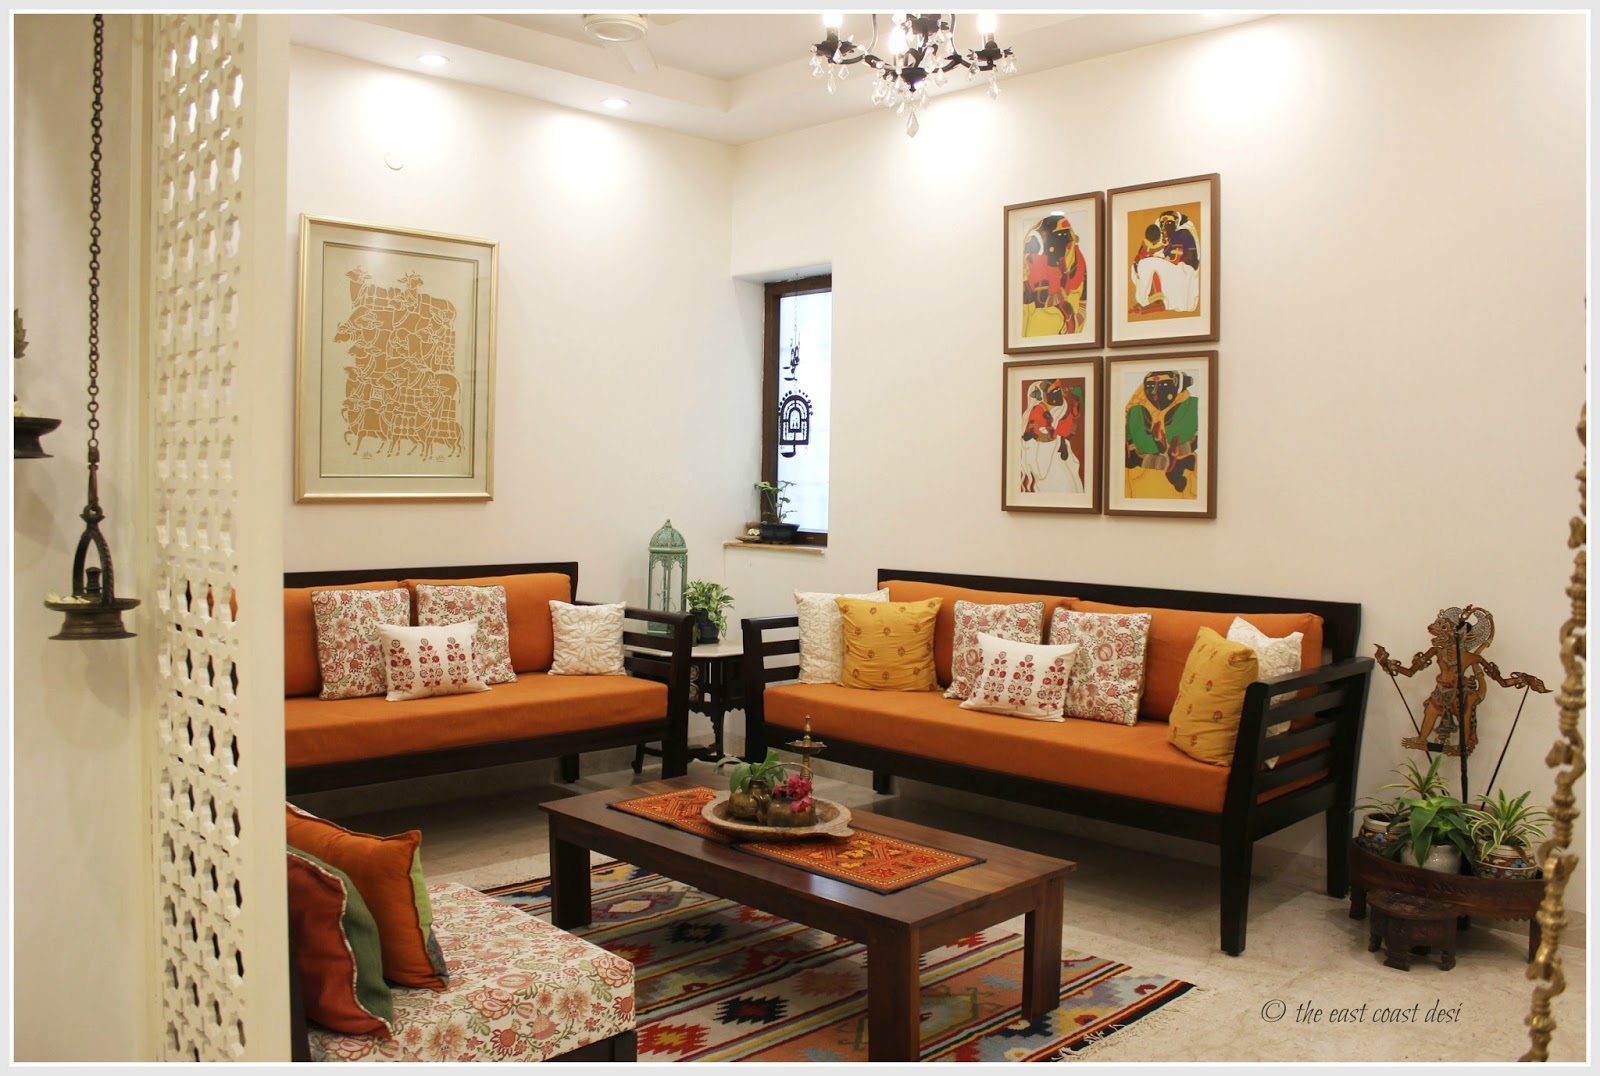 The east coast desi keeping it elegantly eclectic home tour for Living room ideas indian style